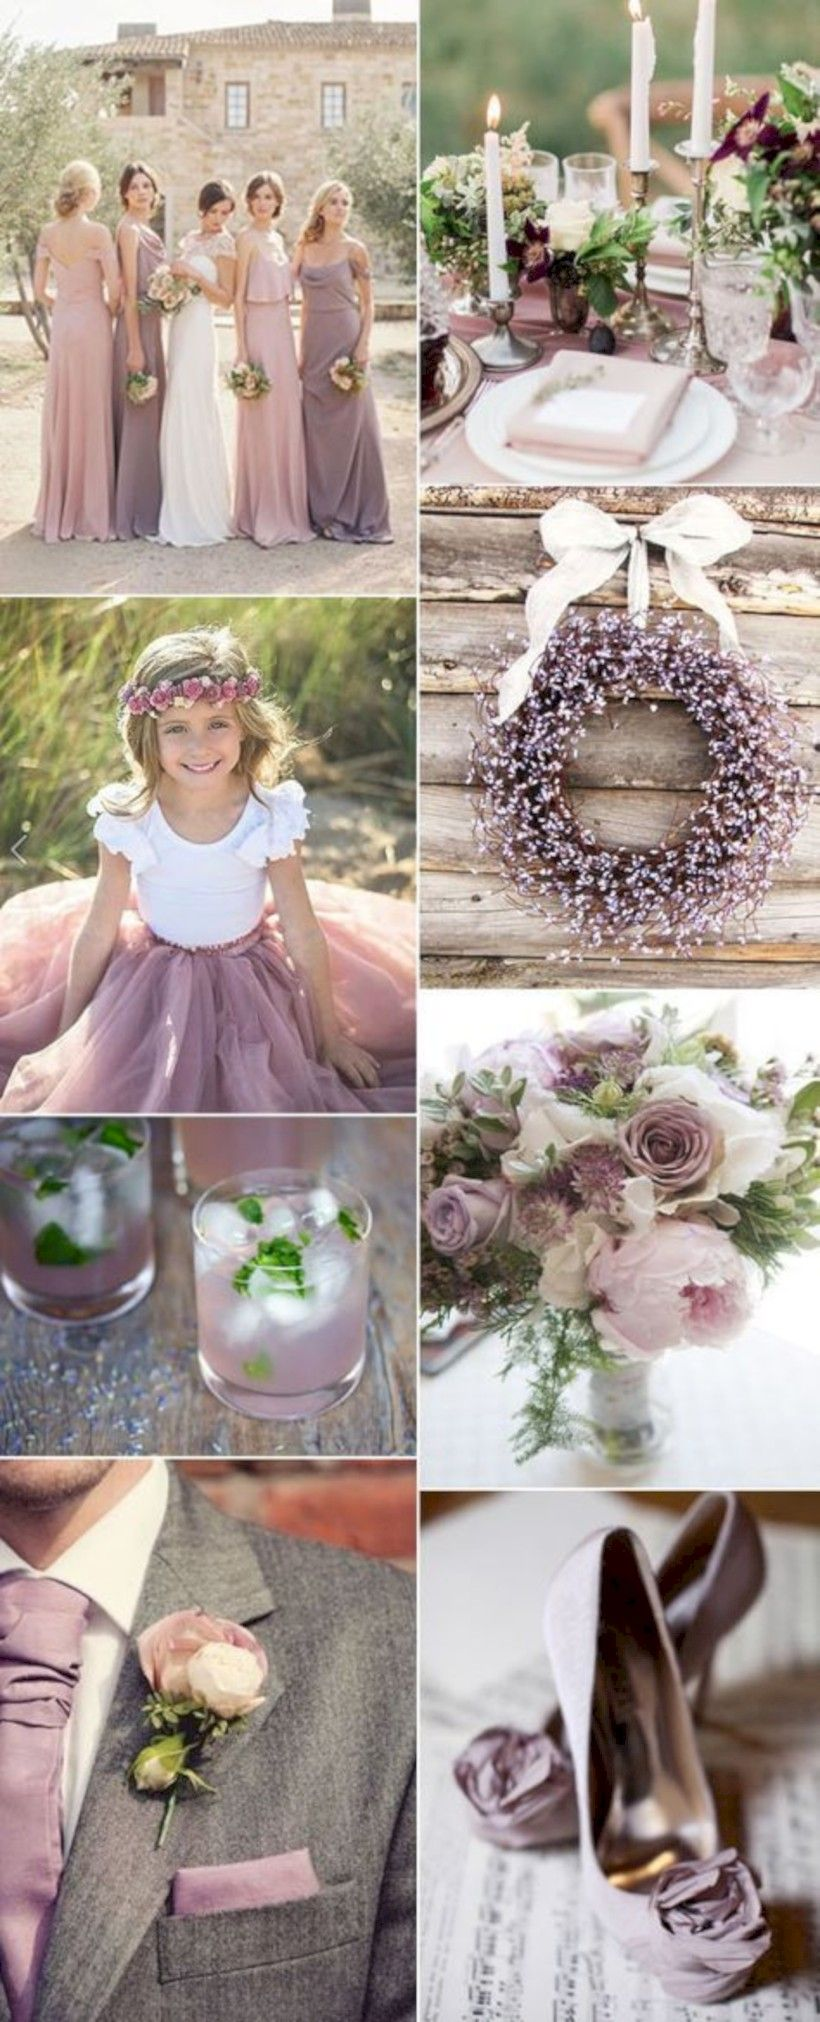 Awesome 17 genius outdoor wedding decoration ideas ash pinterest awesome 17 genius outdoor wedding decoration ideas junglespirit Gallery